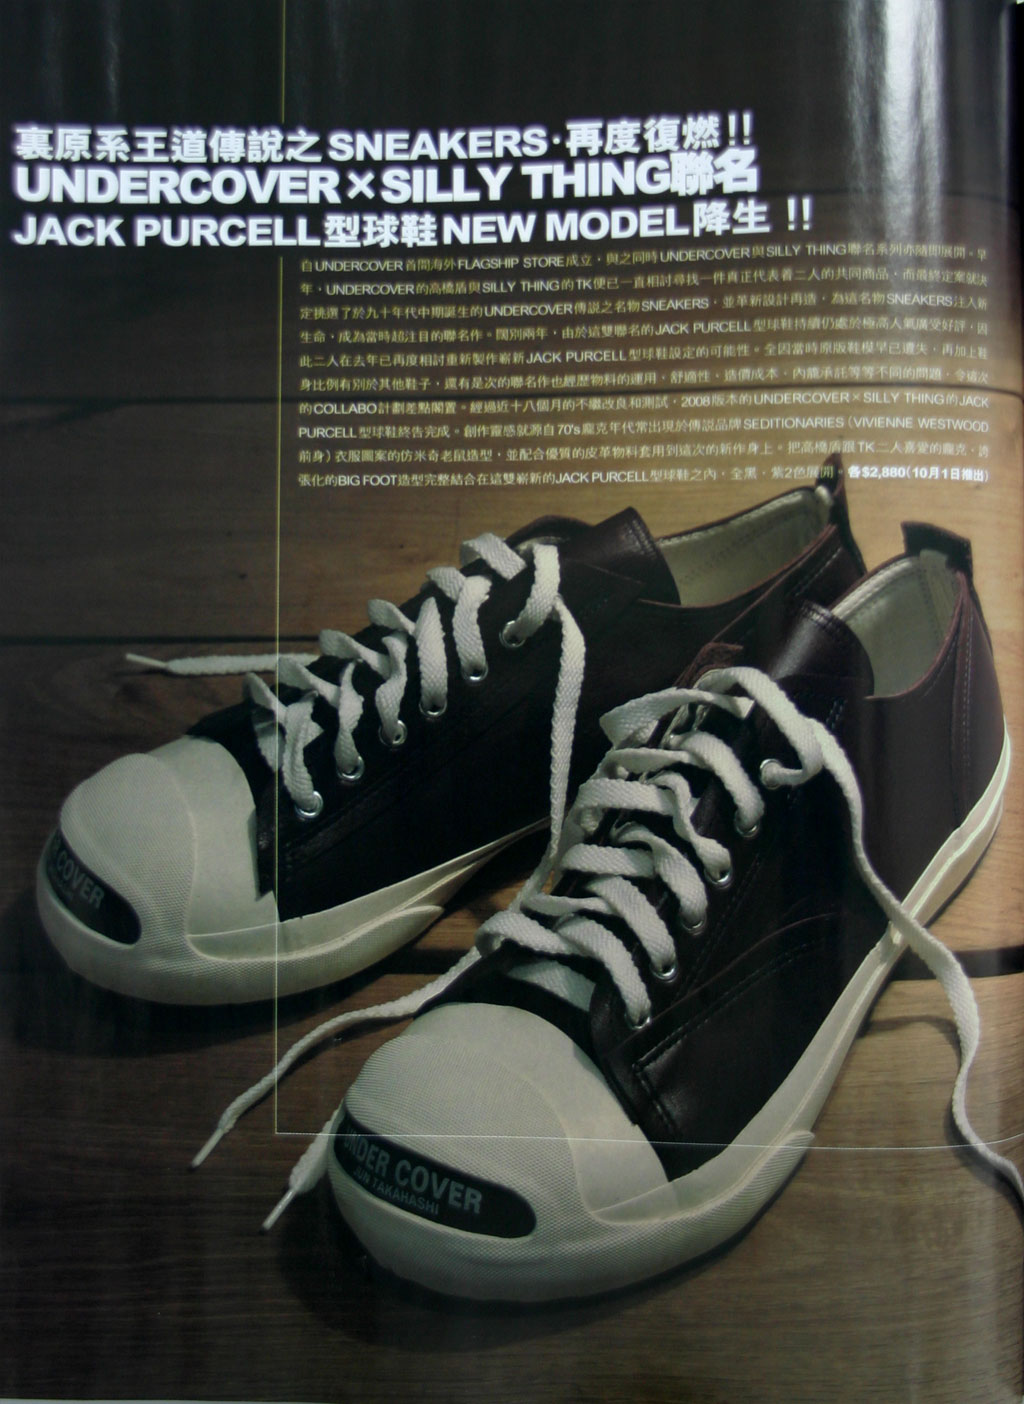 7c62cd61547e Unofficial Jack Purcell  Jack Purcell Advertising